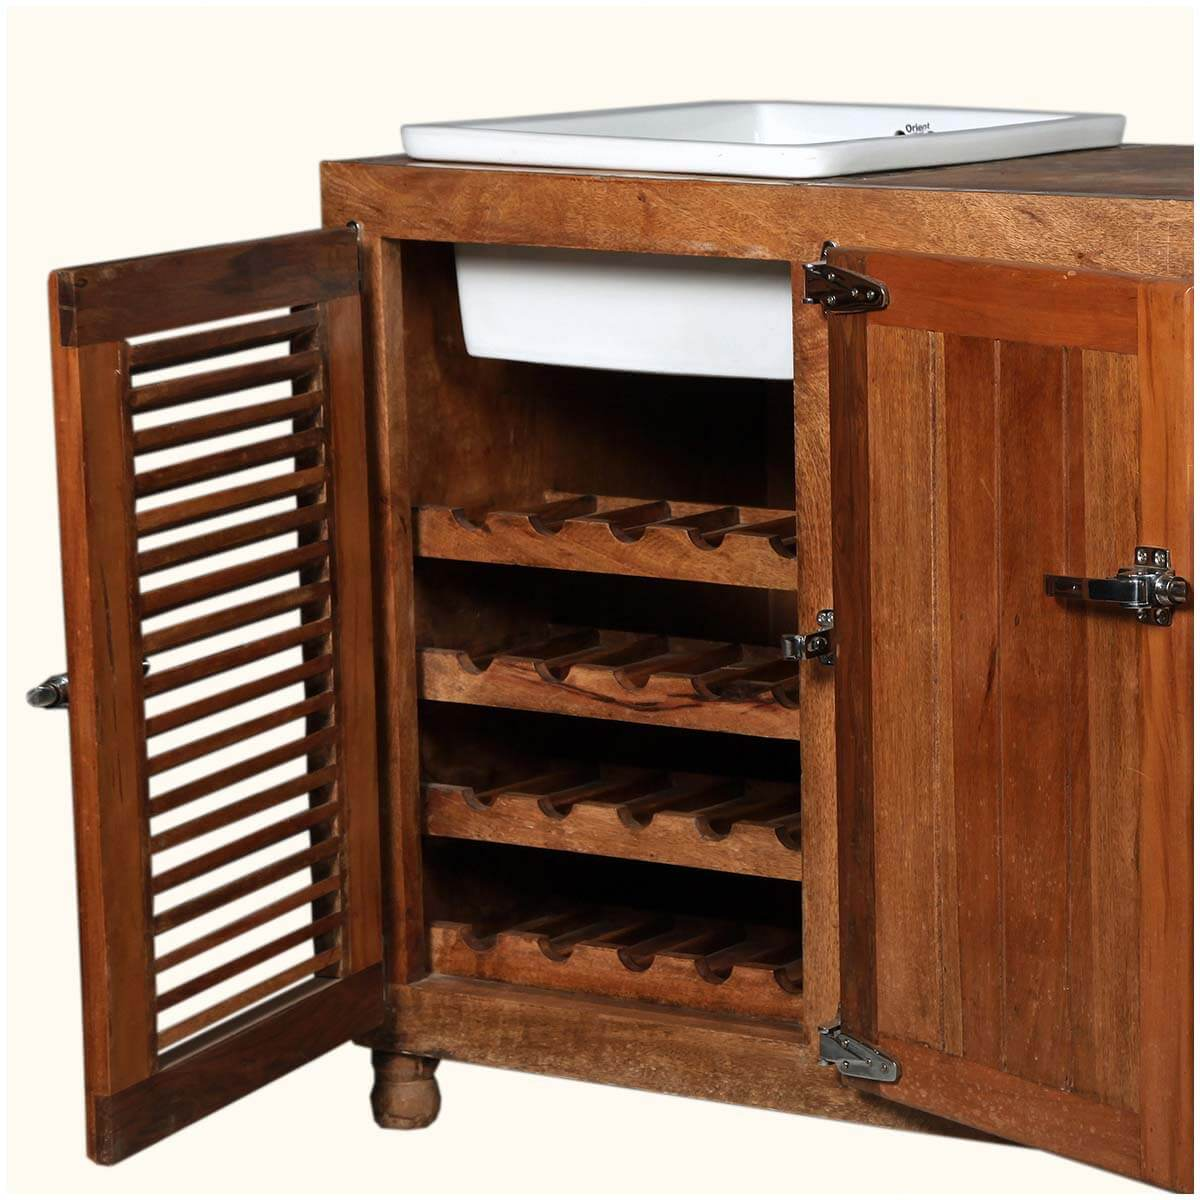 Mission Solid Wood & Ceramic Wine Rack Kitchen Sink Cabinet